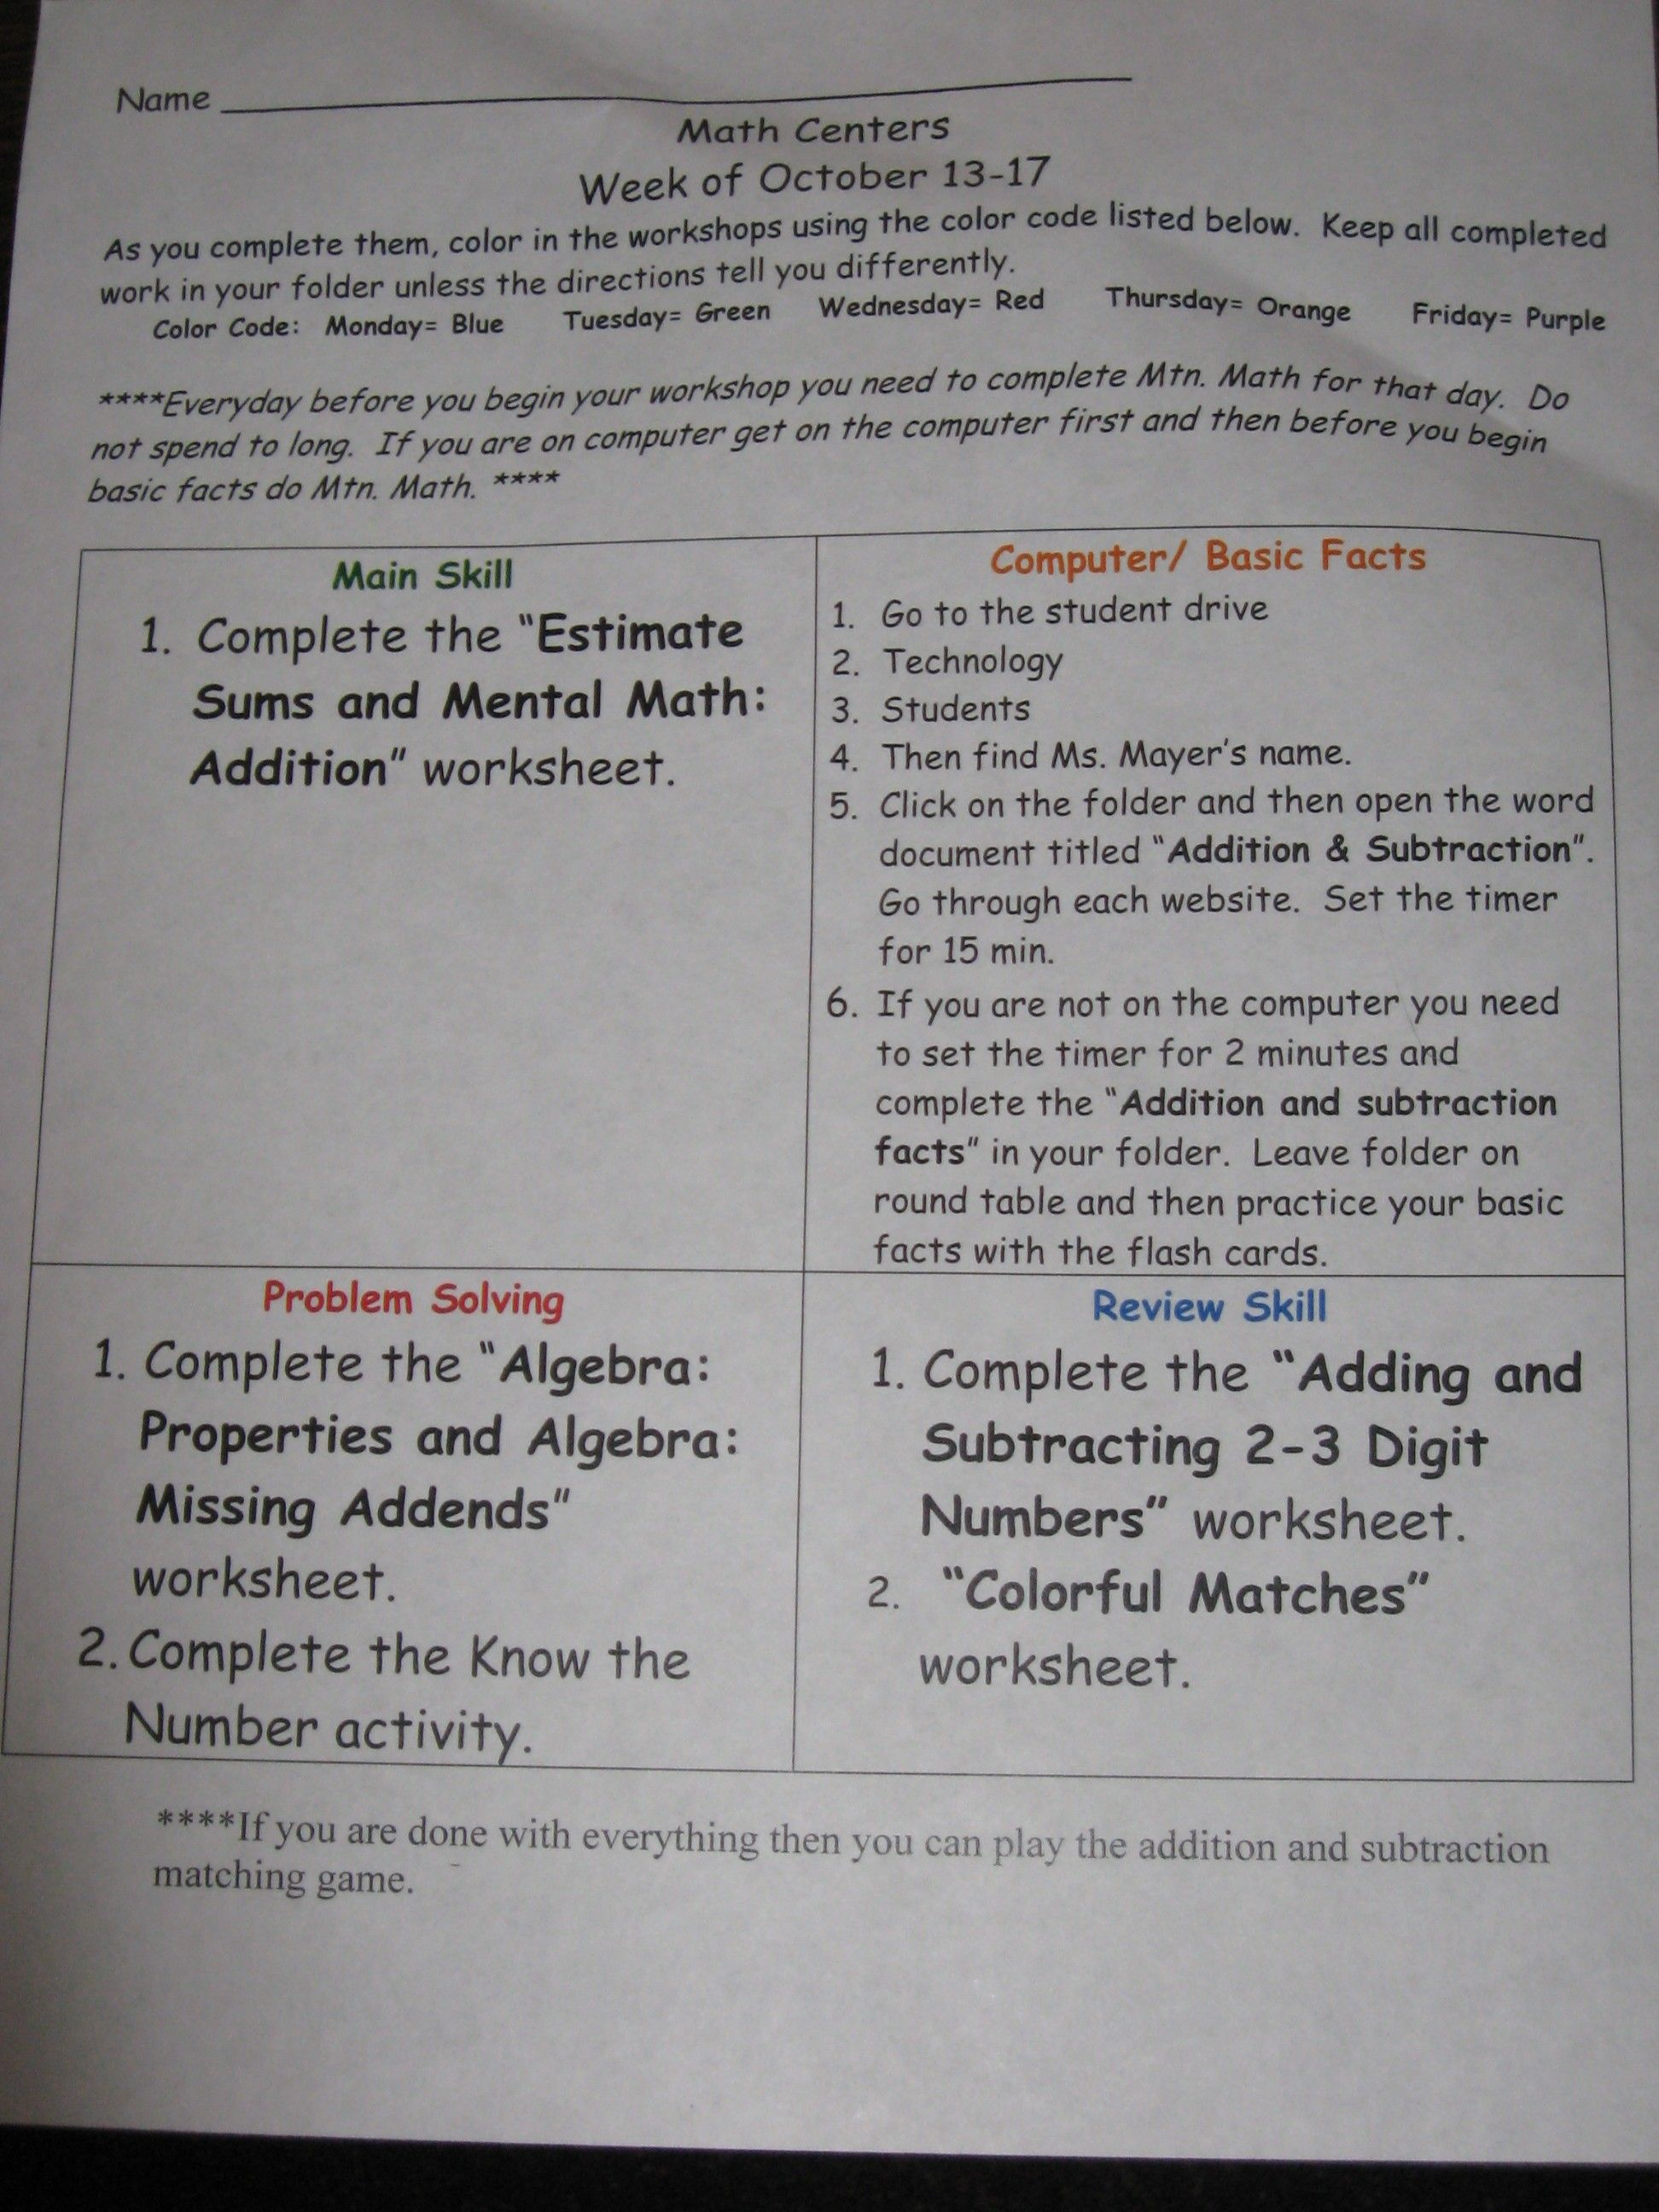 Structured Guided Math Sheet For Kids